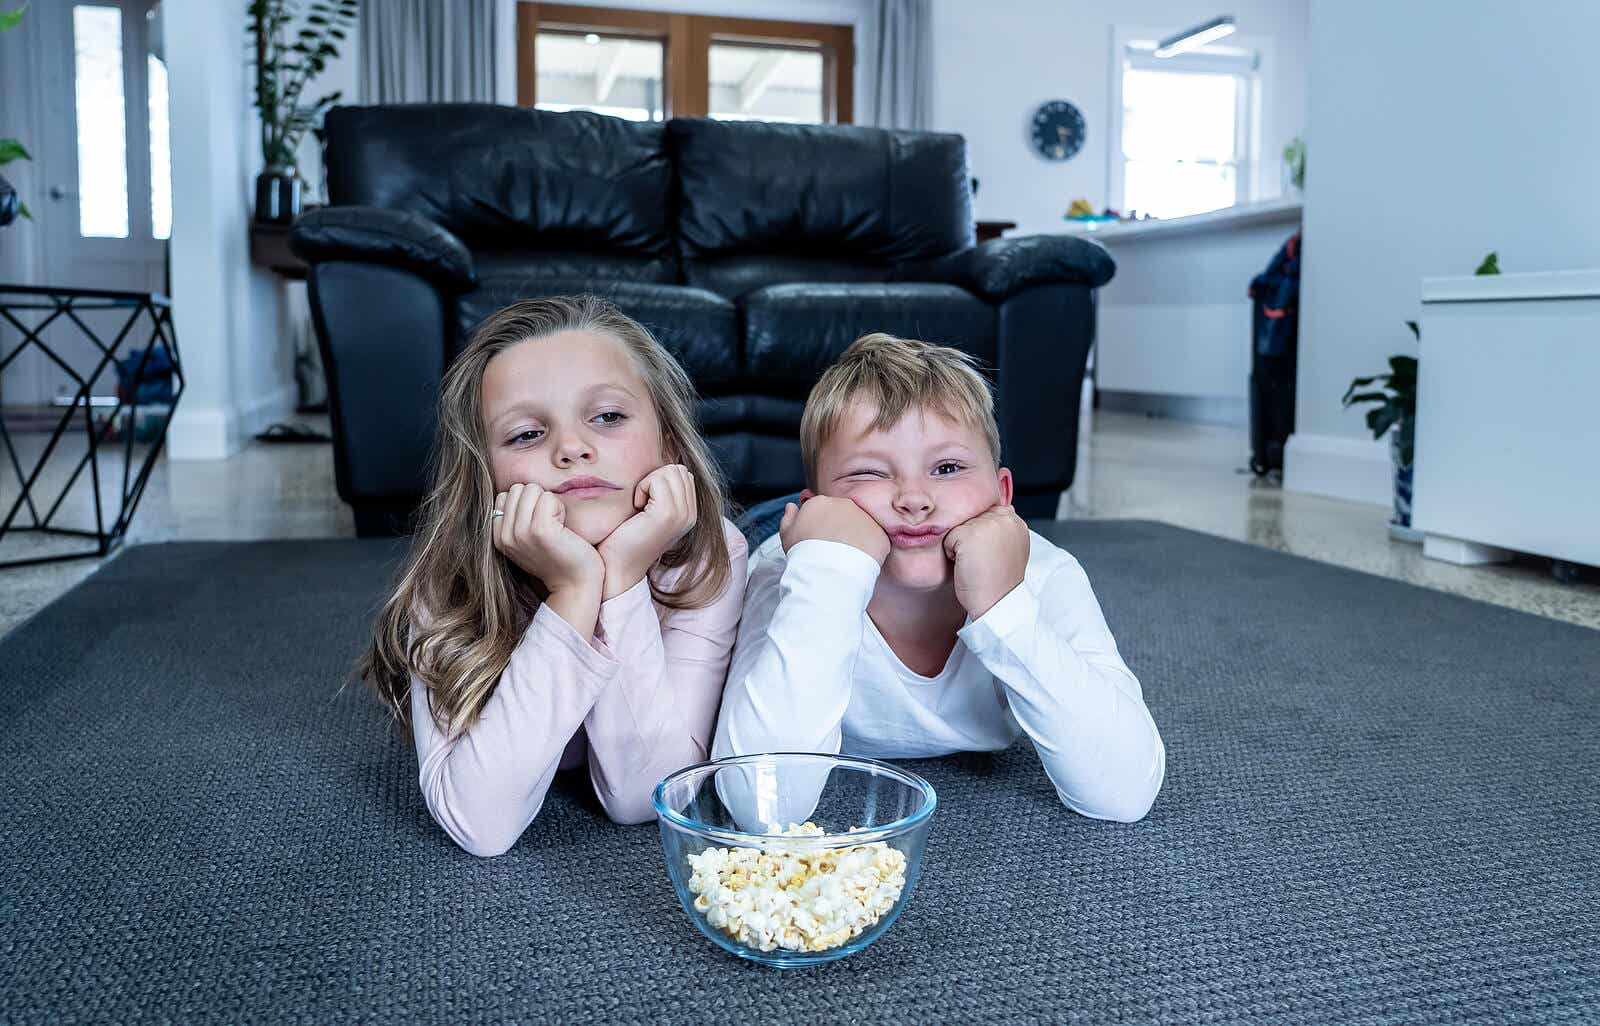 Two bored children eating popcorn in front of the TV.